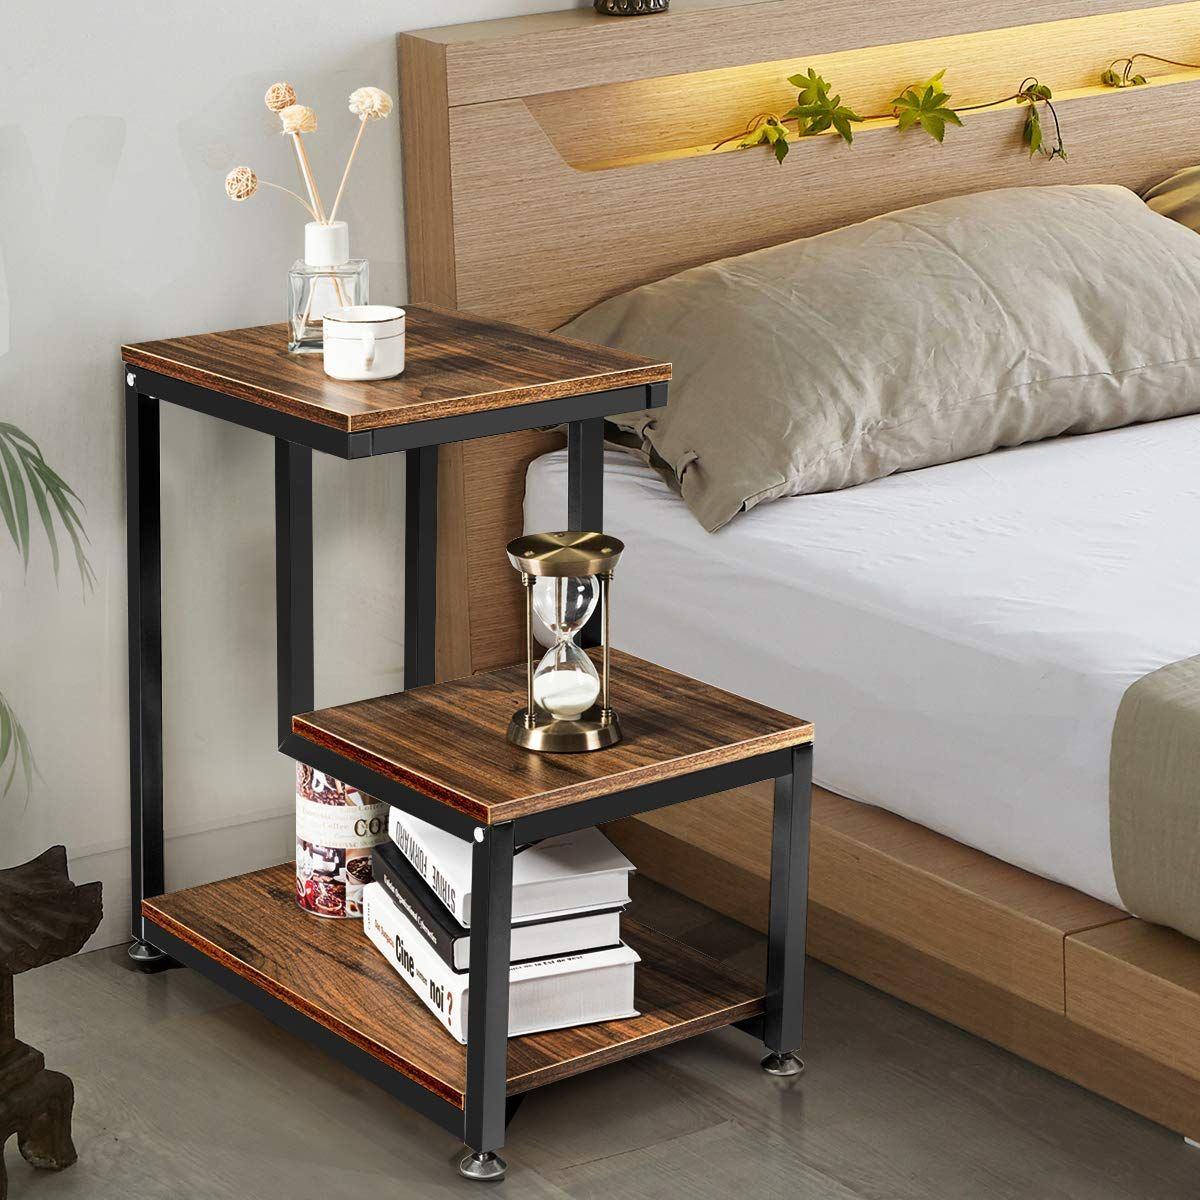 3 Tier Rustic Metal Frame Nightstand With Storage Shelf Chair Side Table Living Room Side Table Sofa End Tables